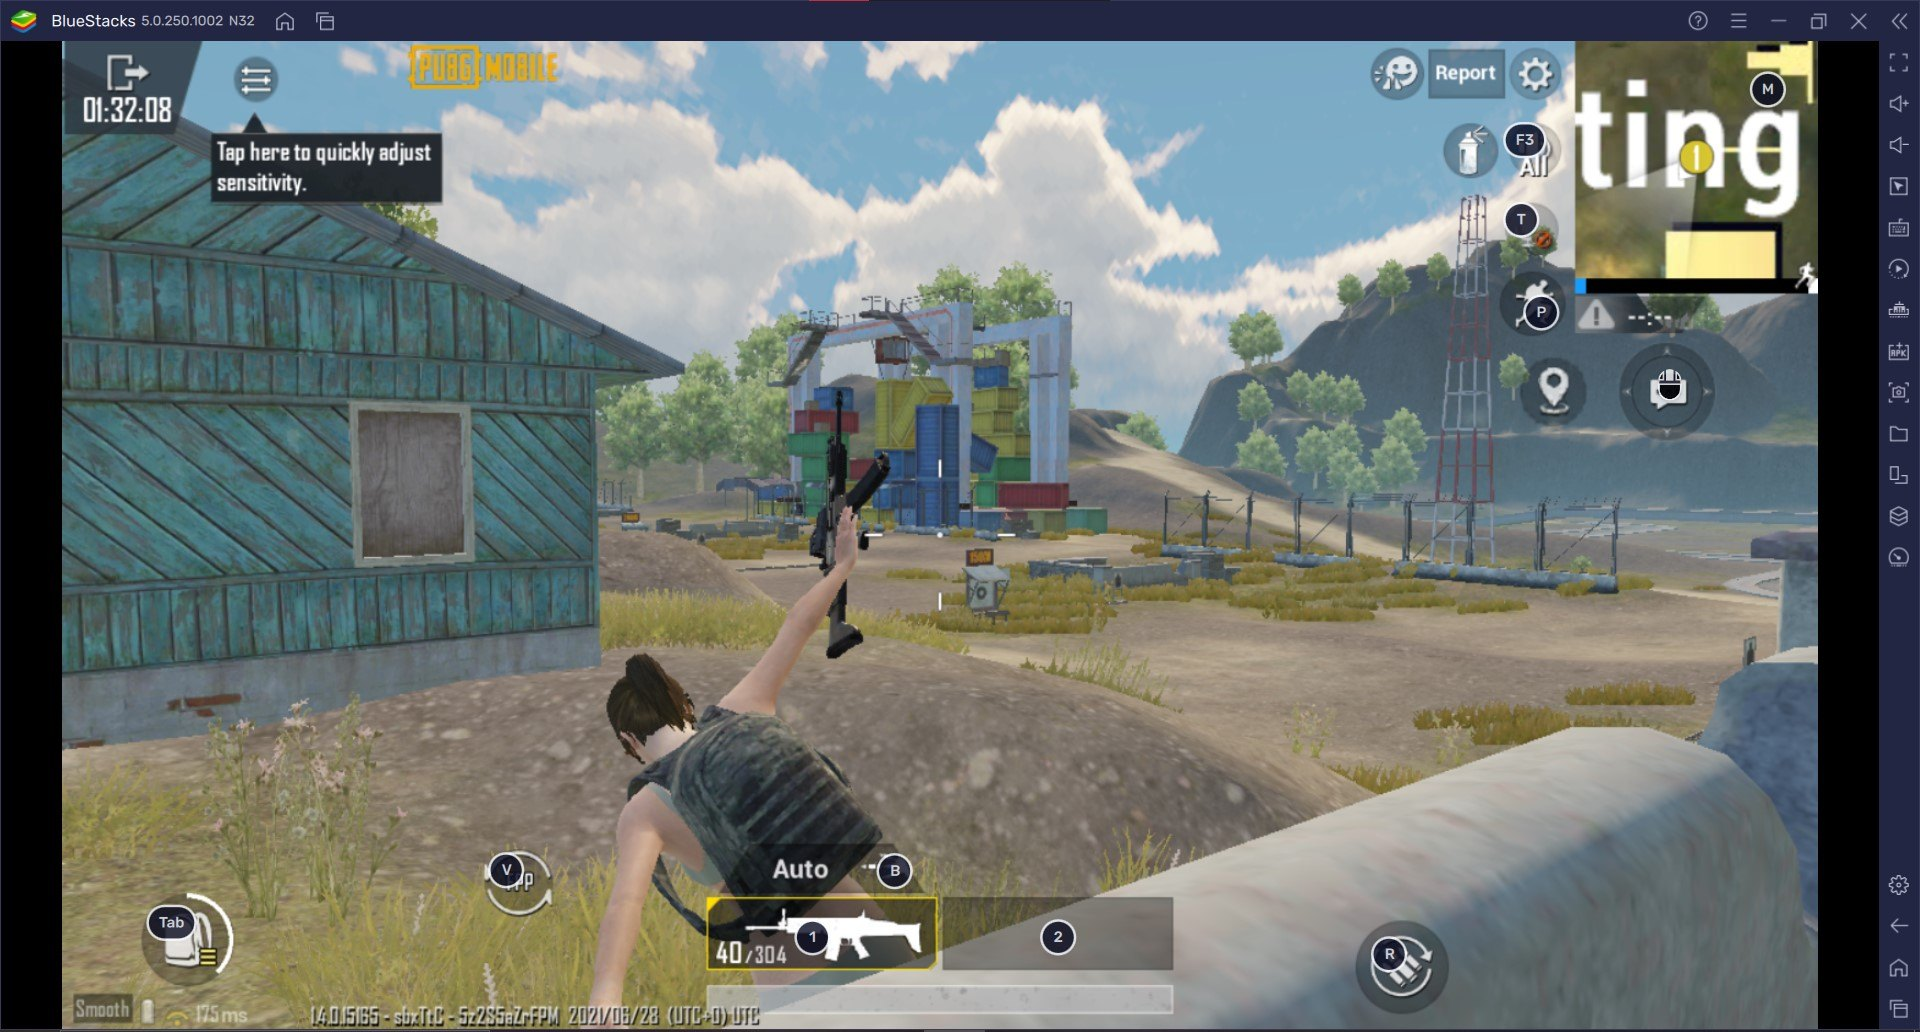 Master the Melee: BlueStacks Guide to Melee Weapons in PUBG Mobile